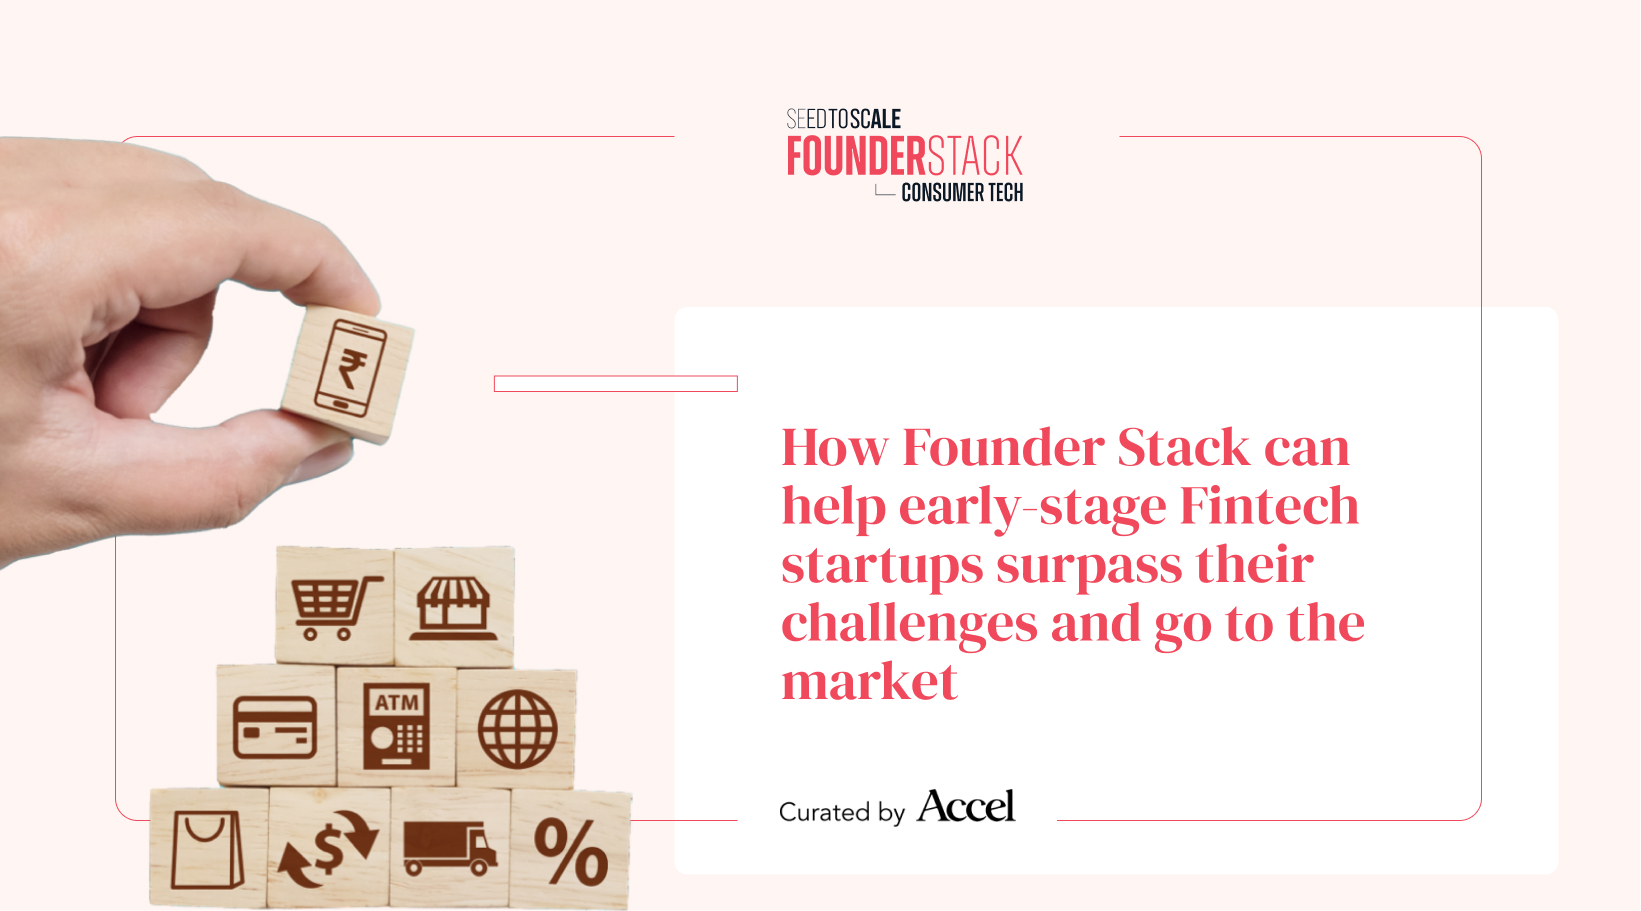 How Founder Stack can help early-stage Fintech startups surpass their challenges and go to the market